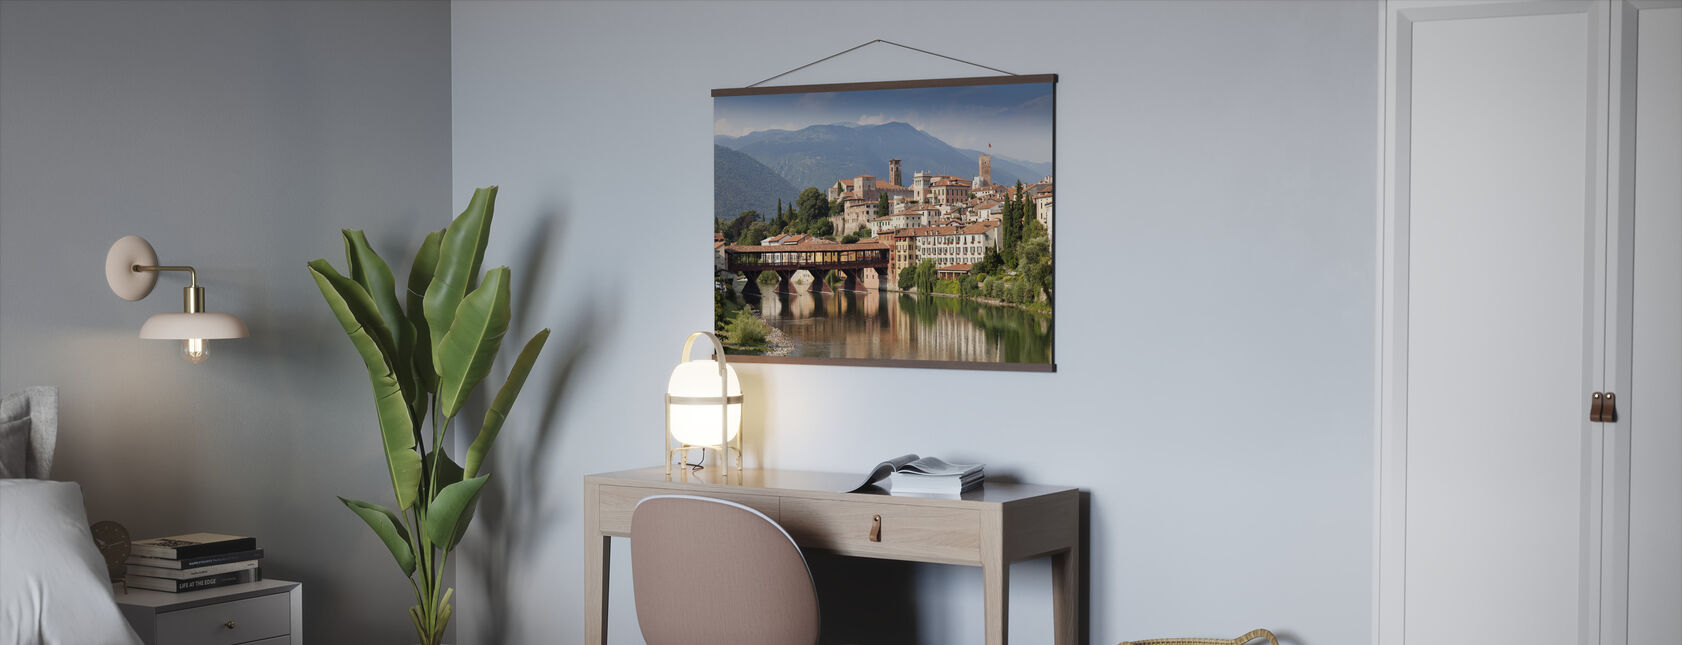 Walls and Bridges - Poster - Office